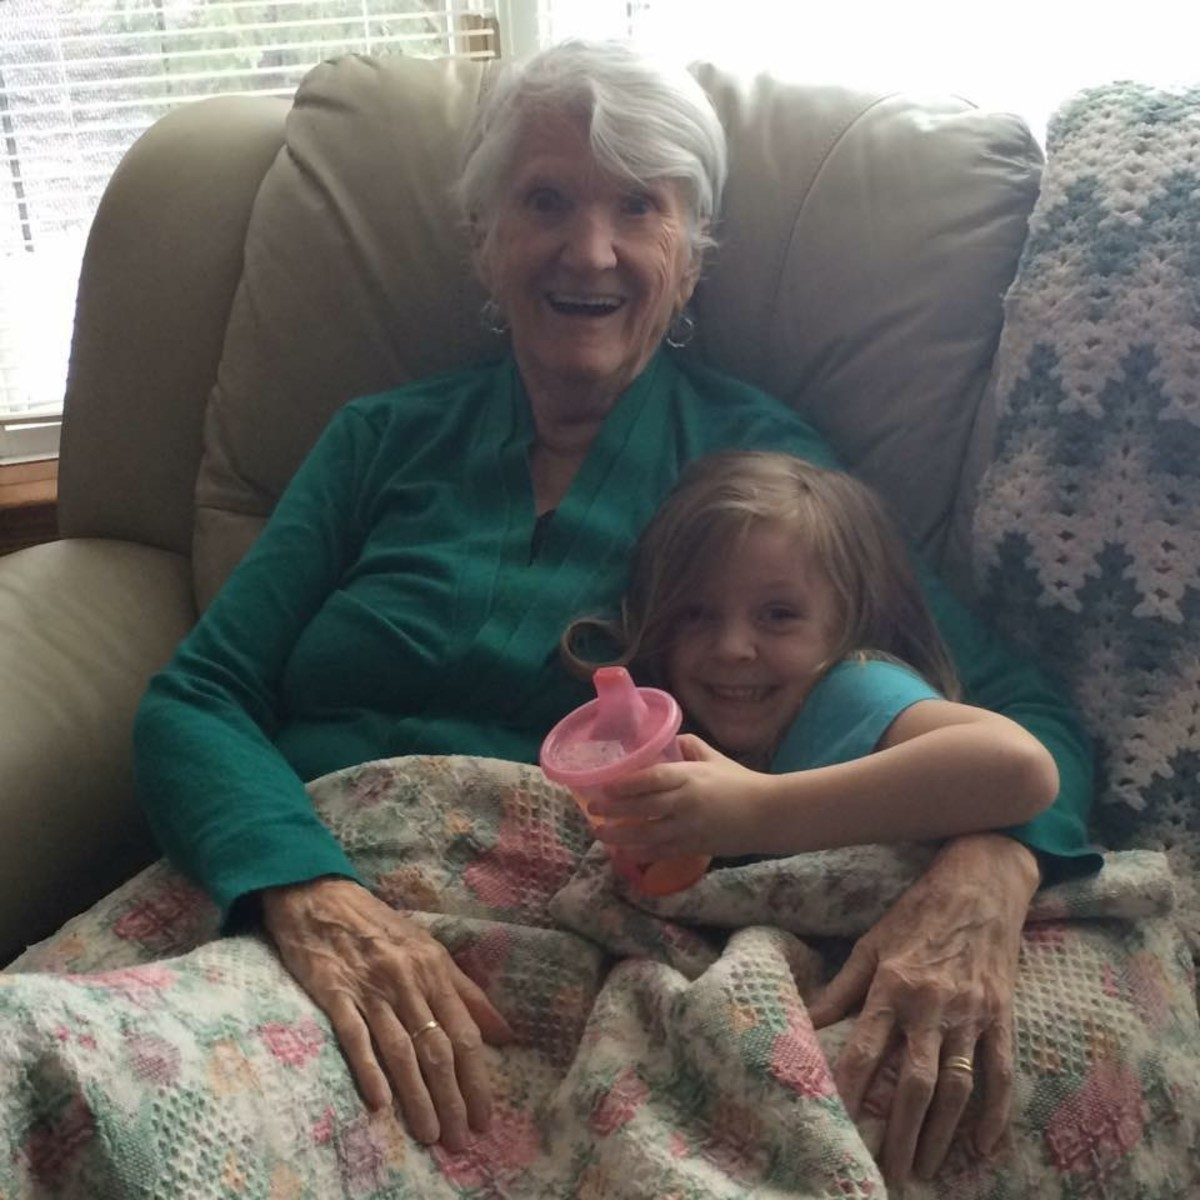 This is a picture of my Grandma and my daughter Gracie in 2015